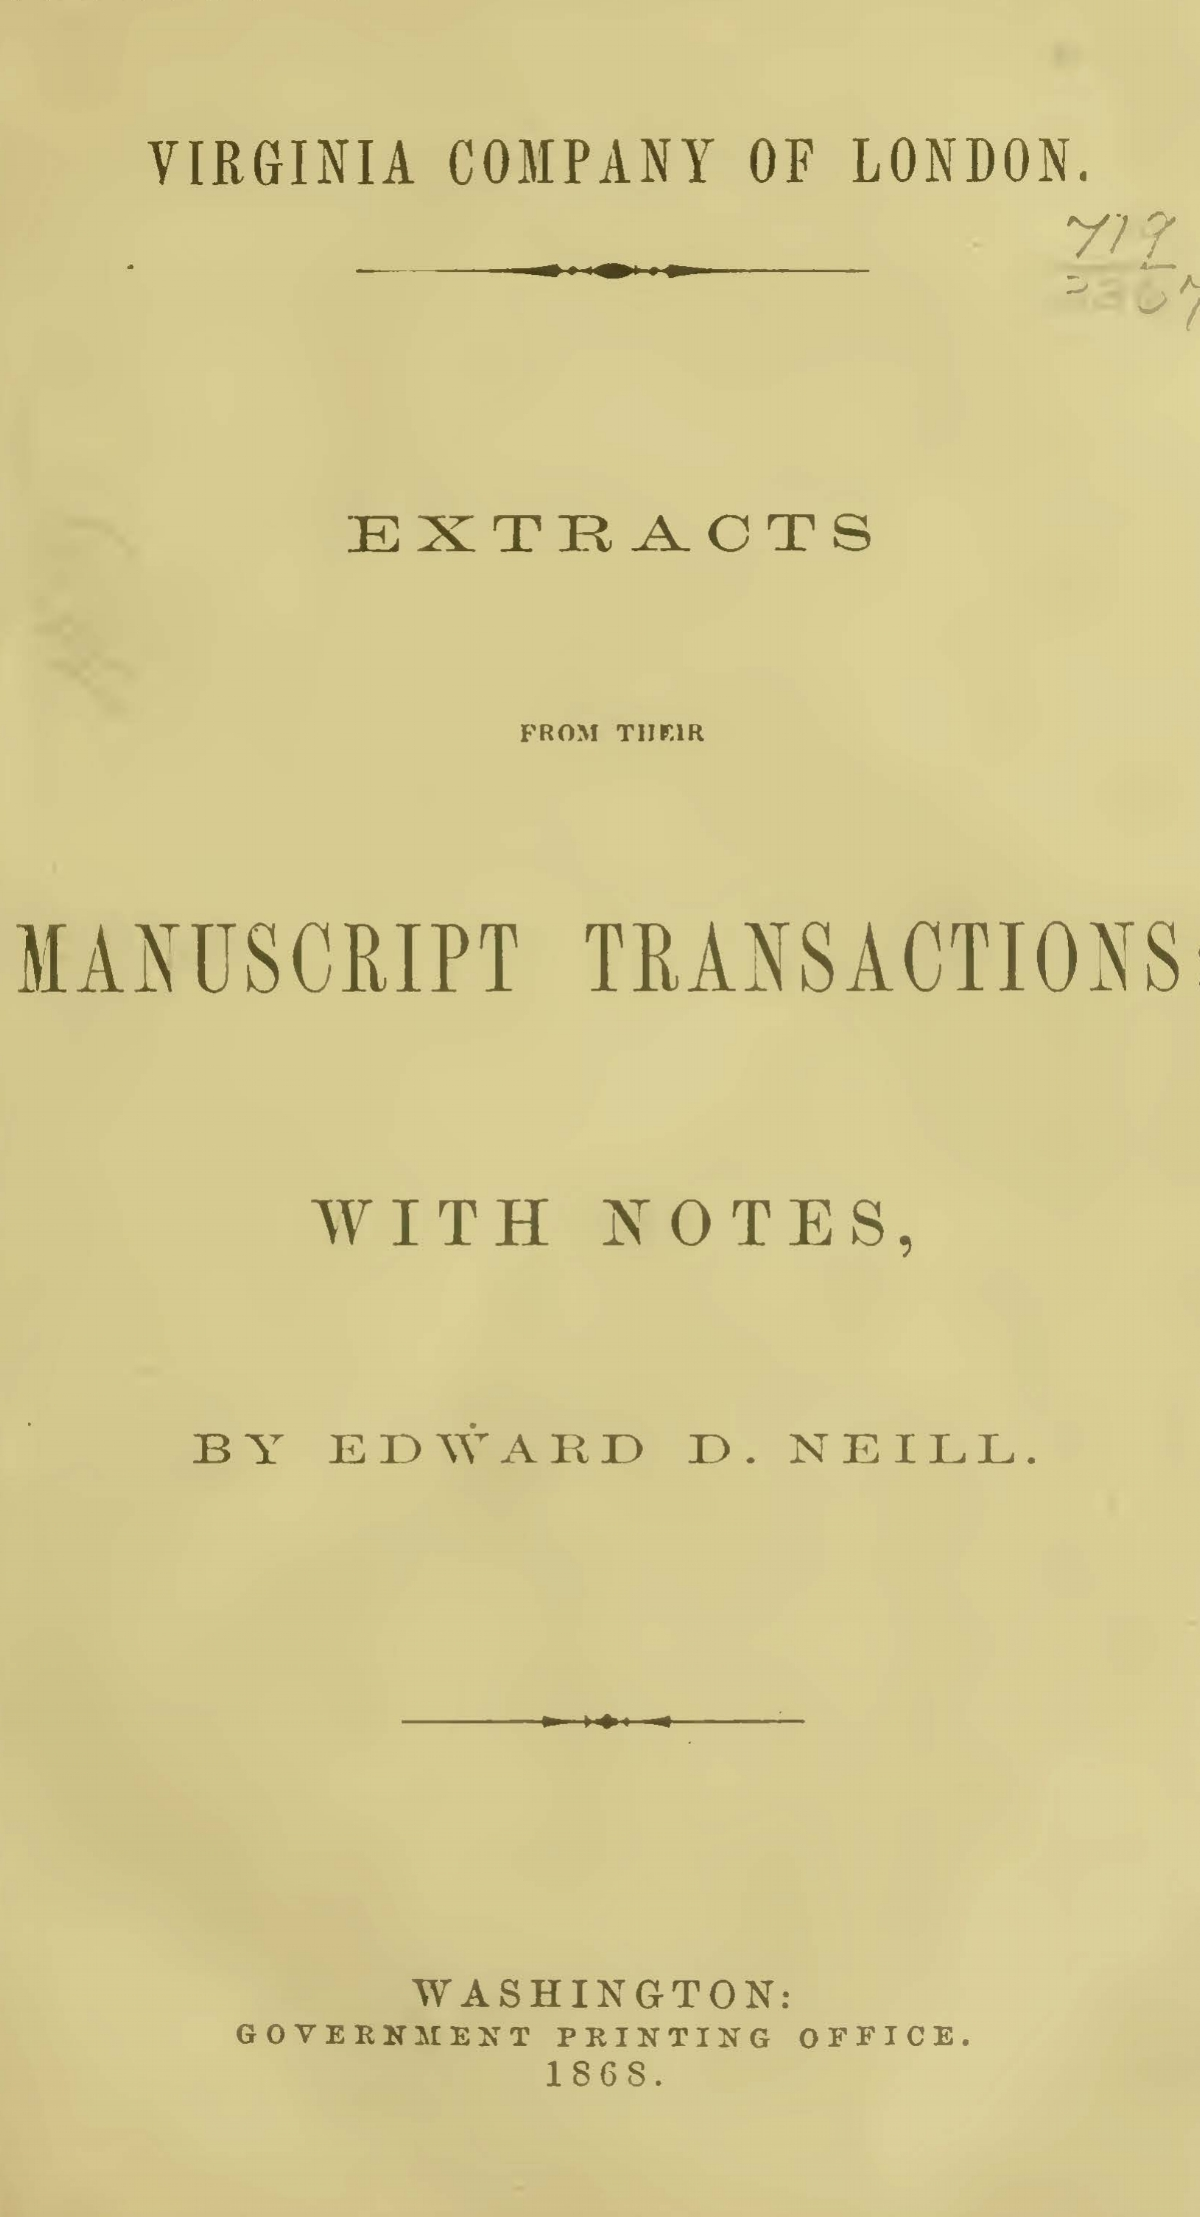 Neill, Edward Duffield, Virginia Company of London Extracts Title Page.jpg